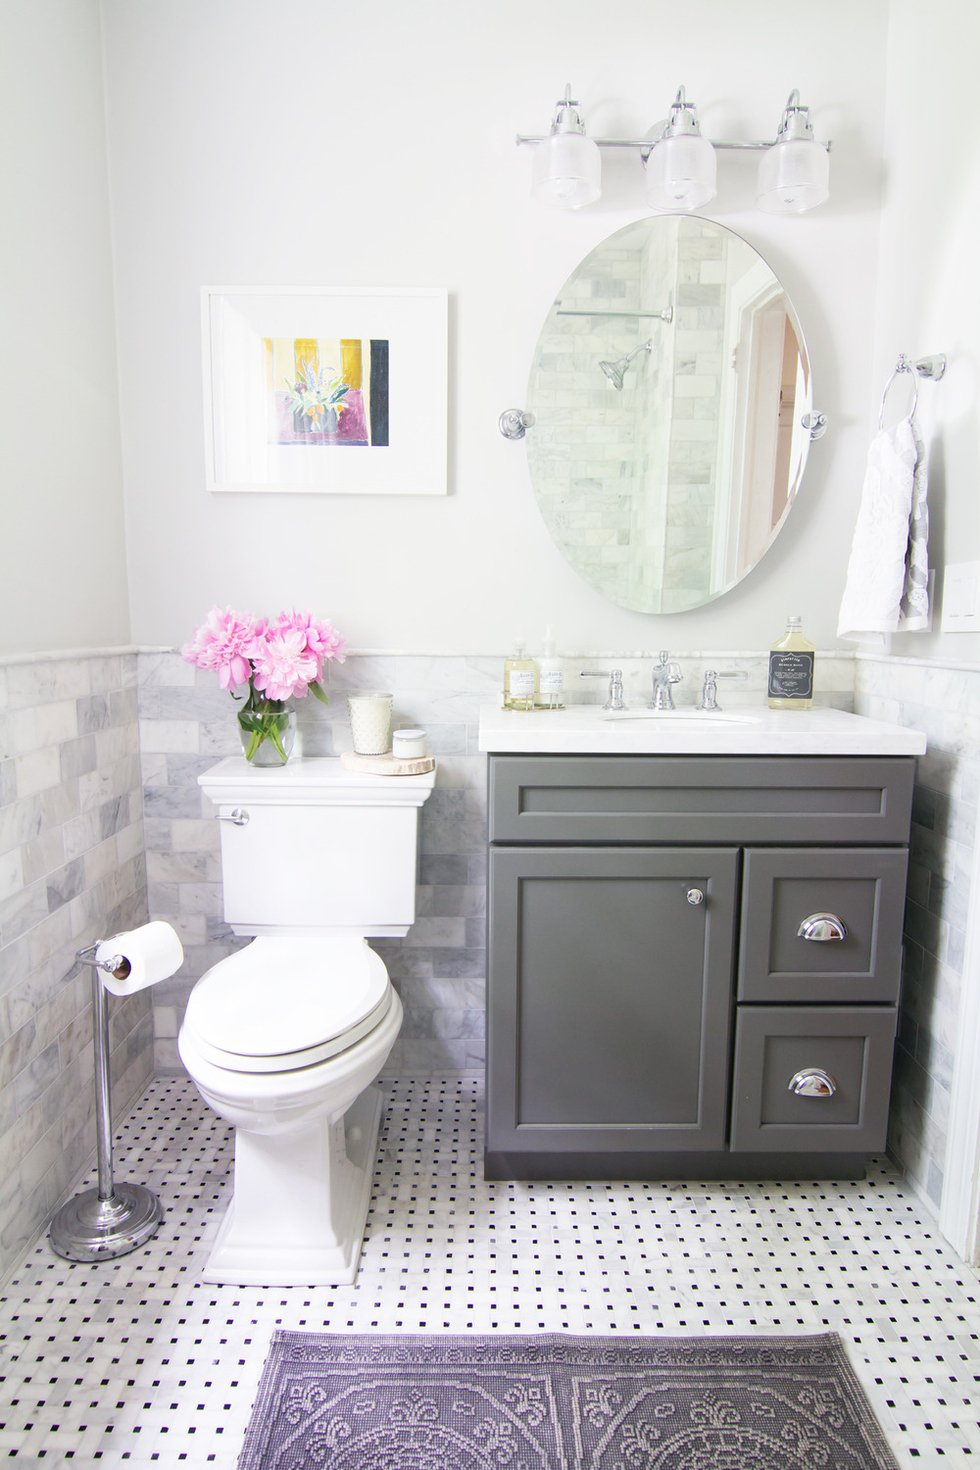 Best 30 of The Best Small and Functional Bathroom Design Ideas small bathroom remodel ideas